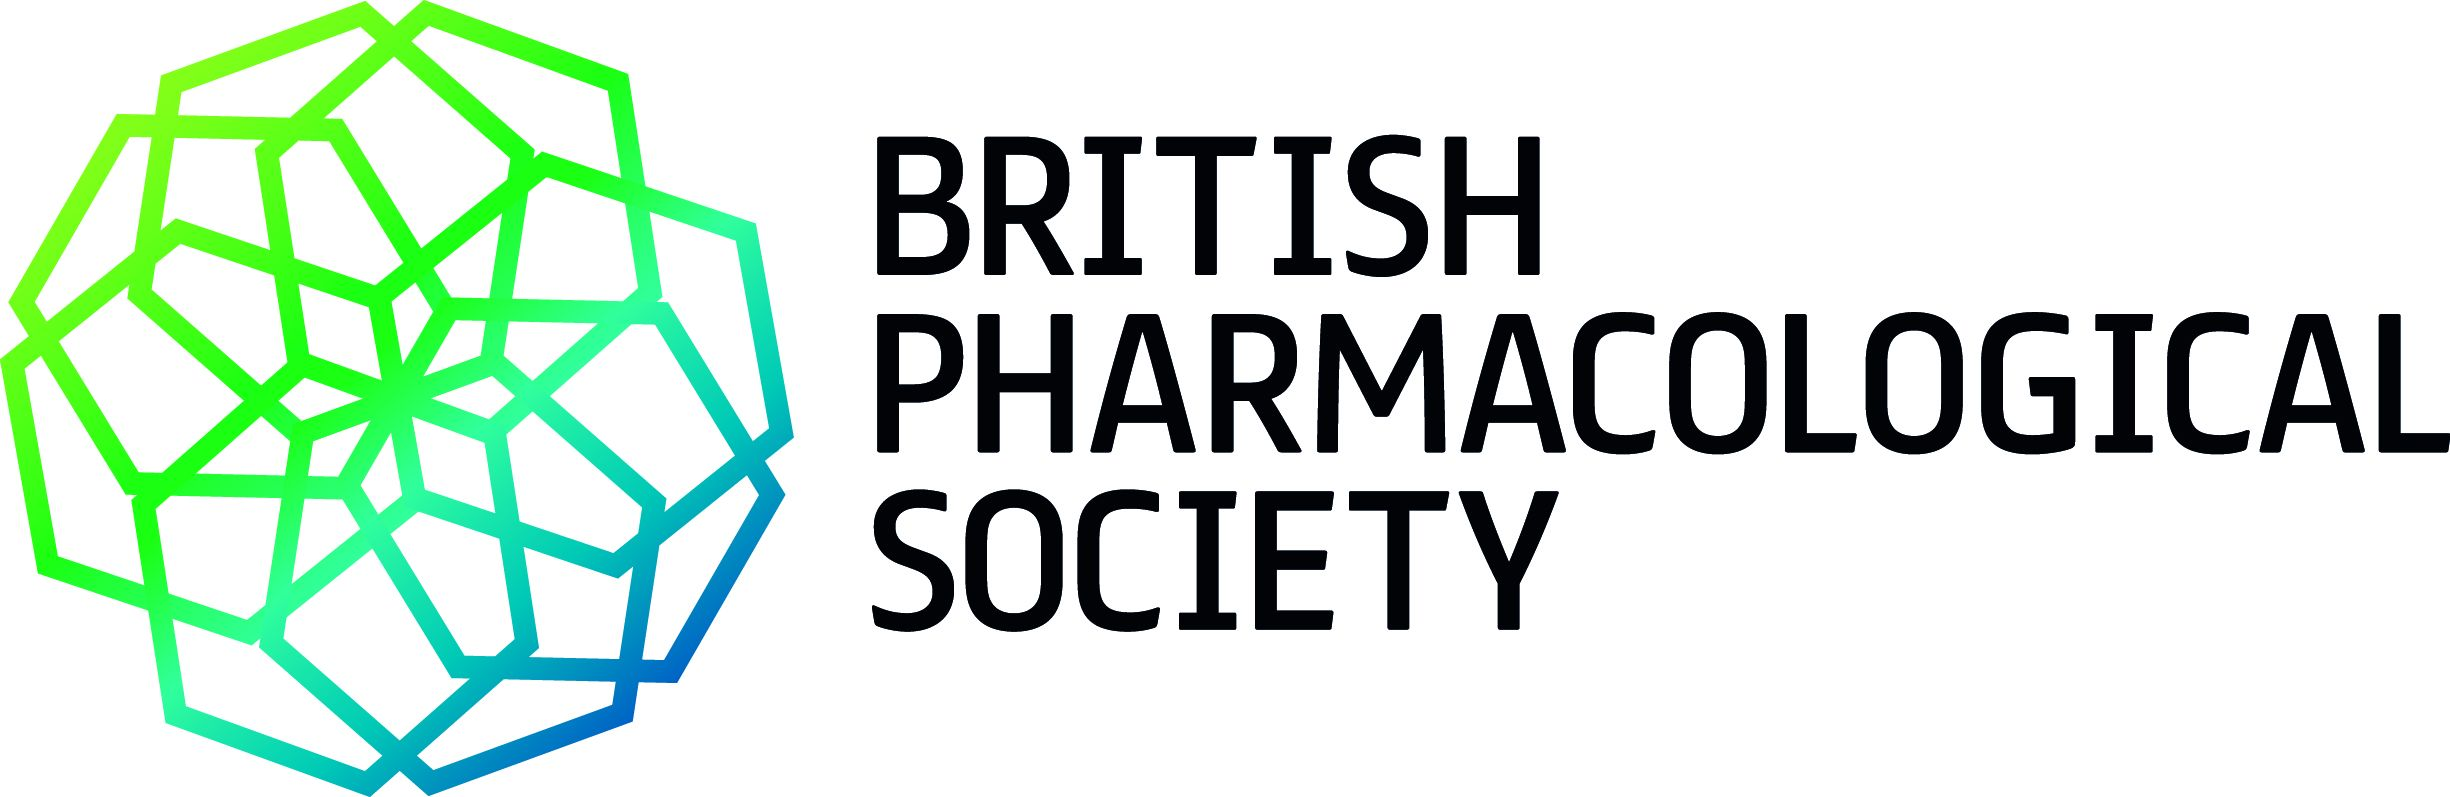 British_Pharmacological_Society_logo__high_res_colour.jpg